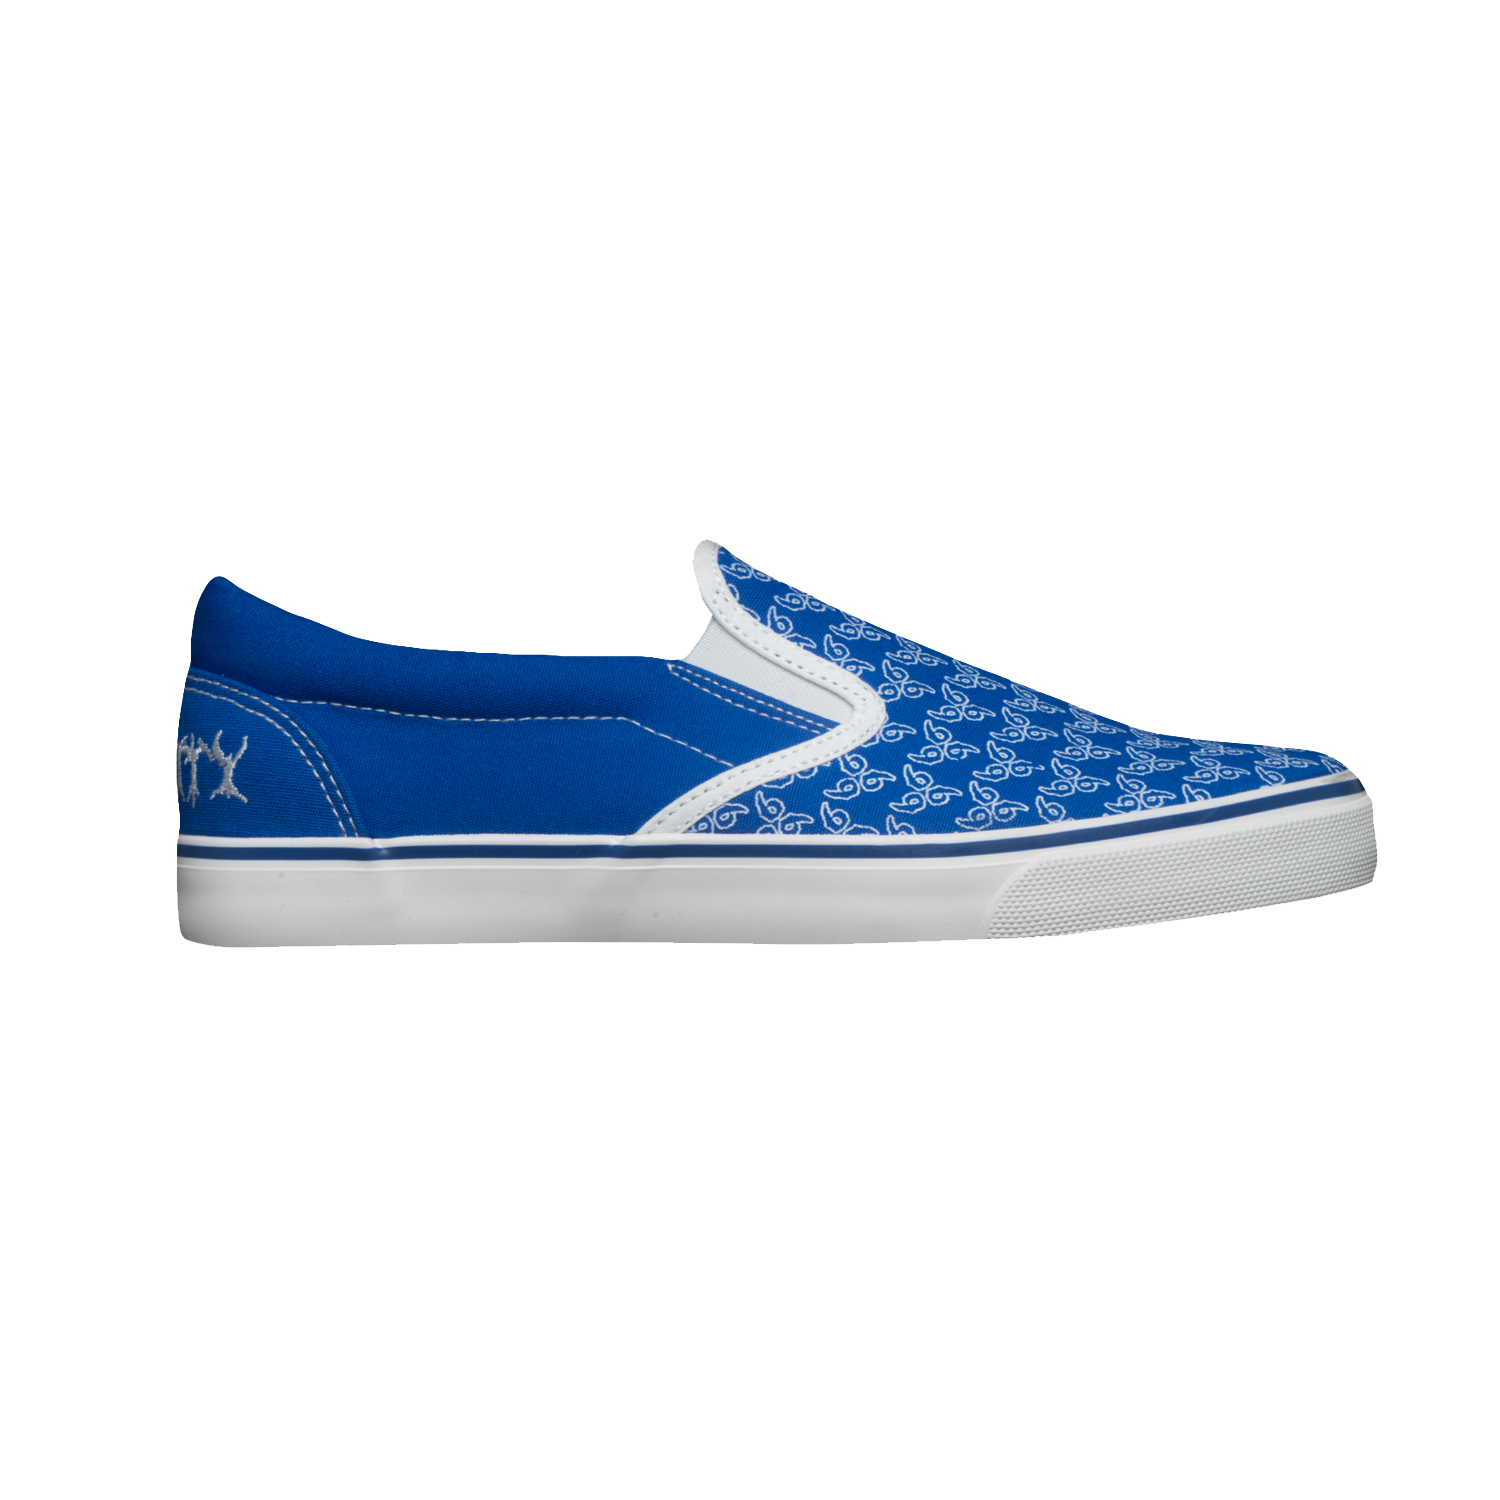 999 No Vanity Shoe in Blue